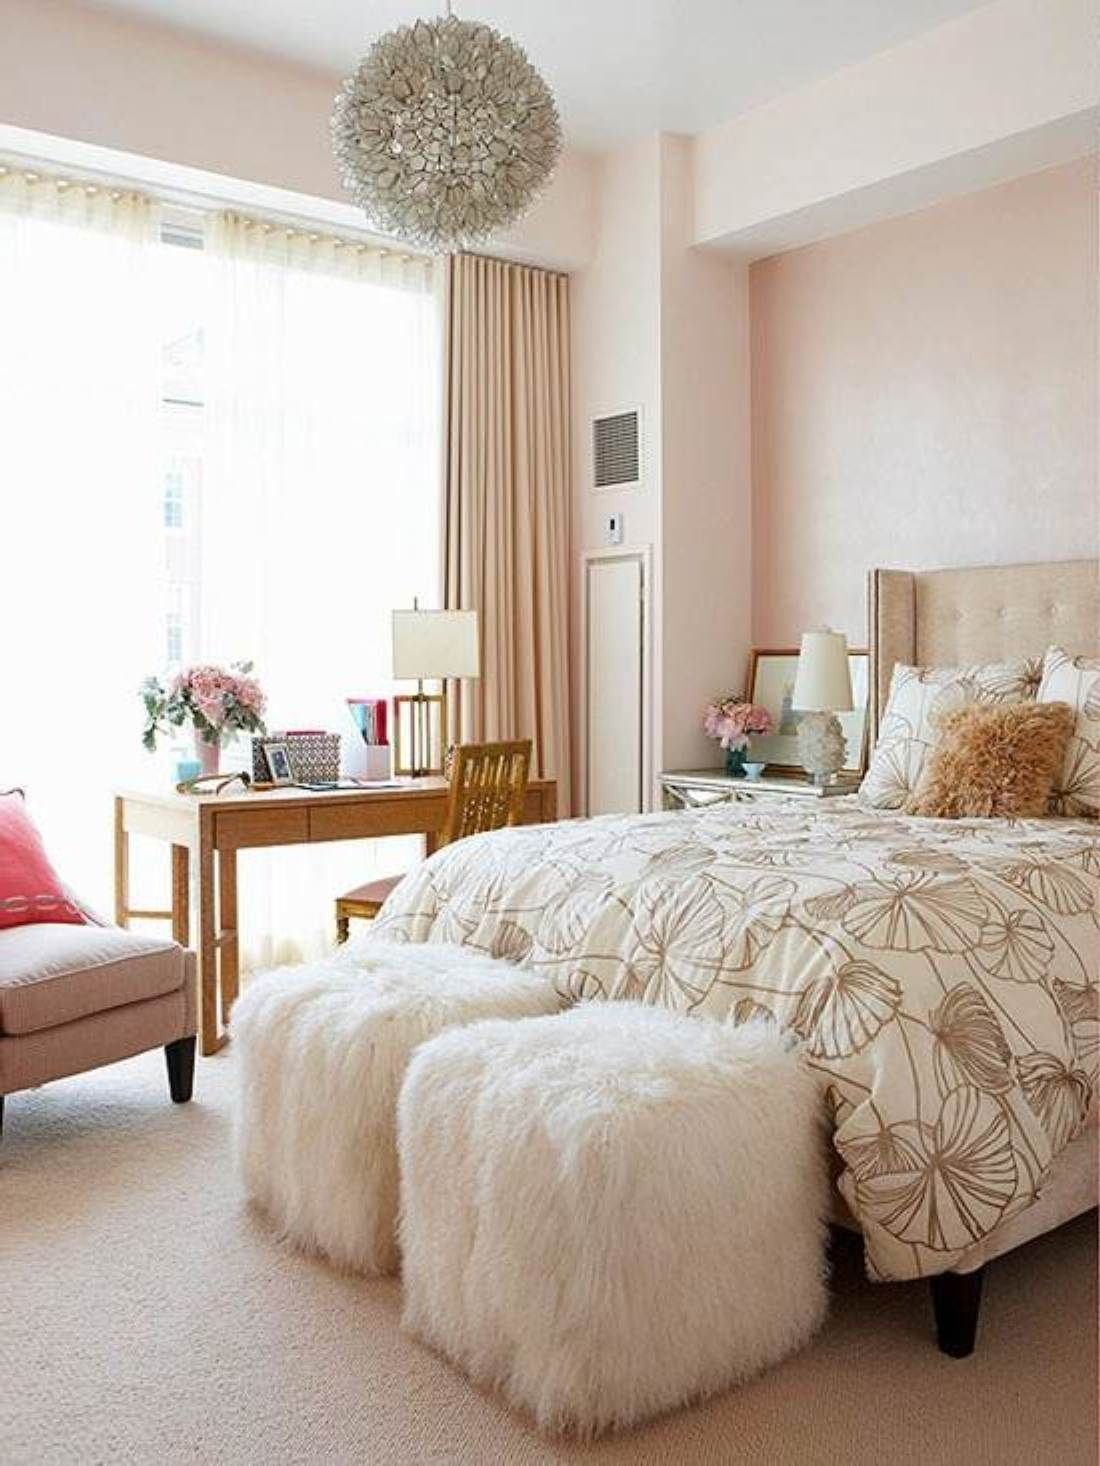 Bedroom Women ideas fotos